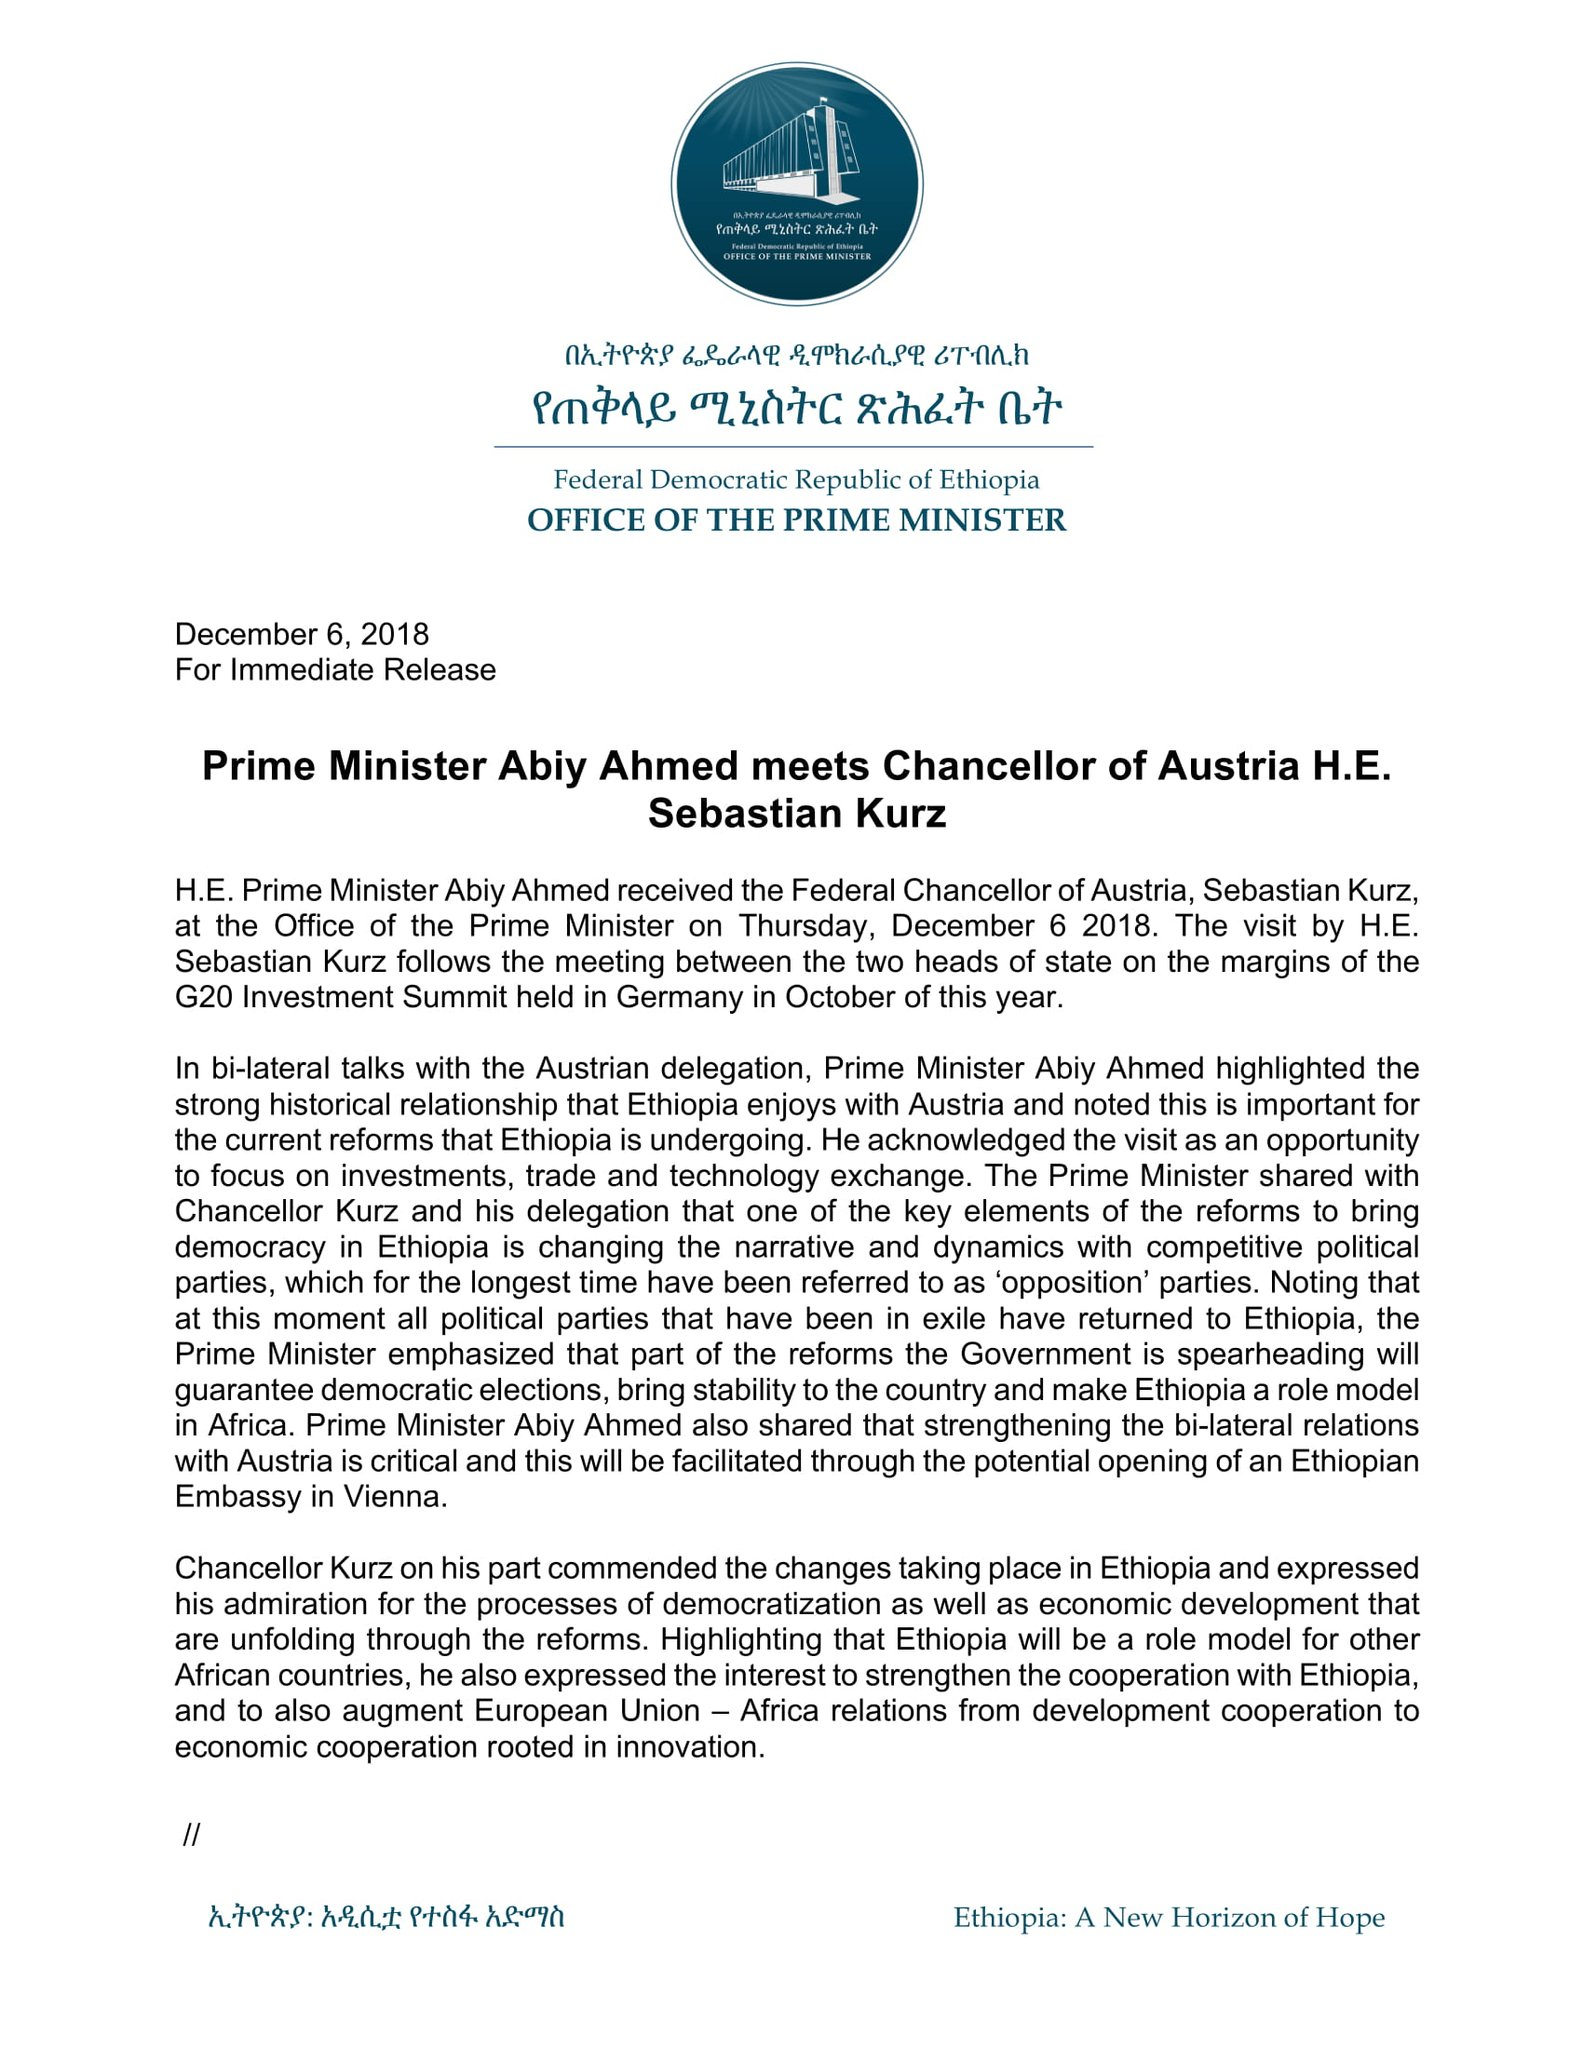 A press  release capturing the bi-lateral discussions held between PM Abiy Ahmed and Chancellor of Austria Sebastian Kurz